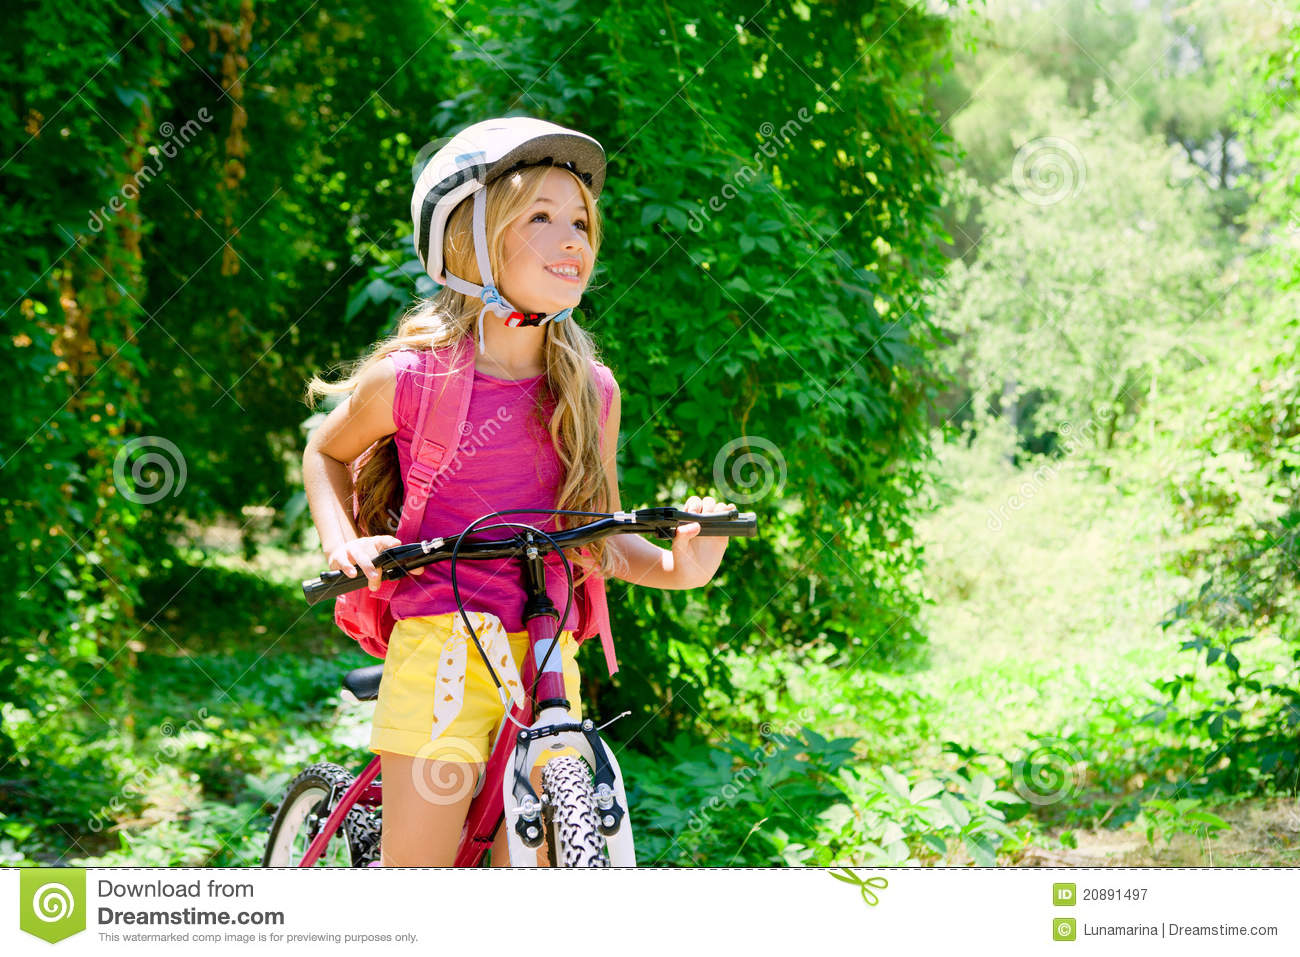 Cute Small Girl Wallpaper Download Children Girl Riding Bicycle Outdoor In Forest Stock Image